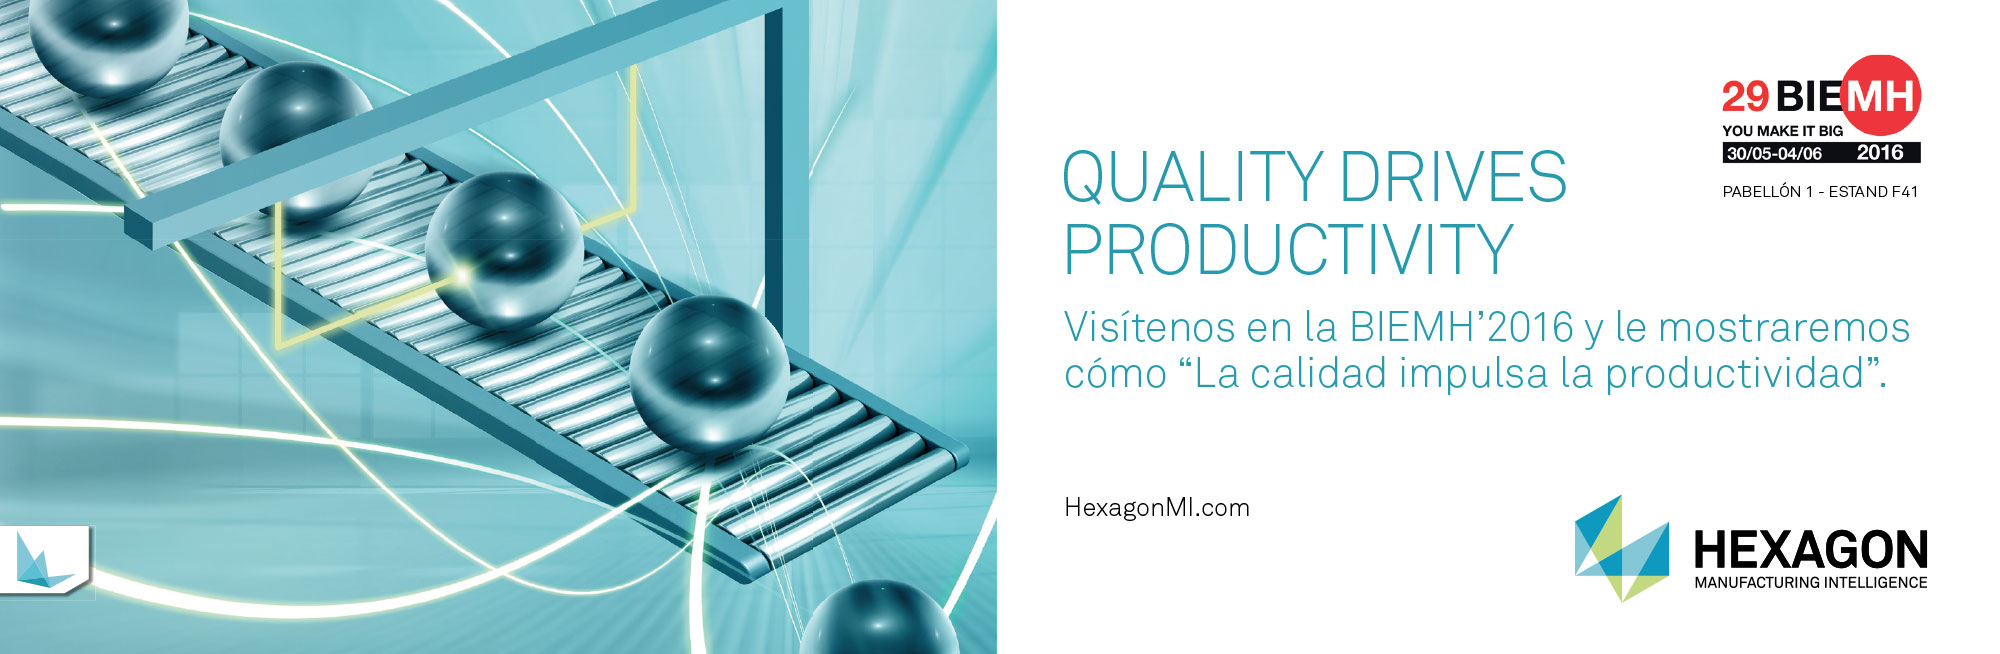 Hexagon - Quality drives productivity